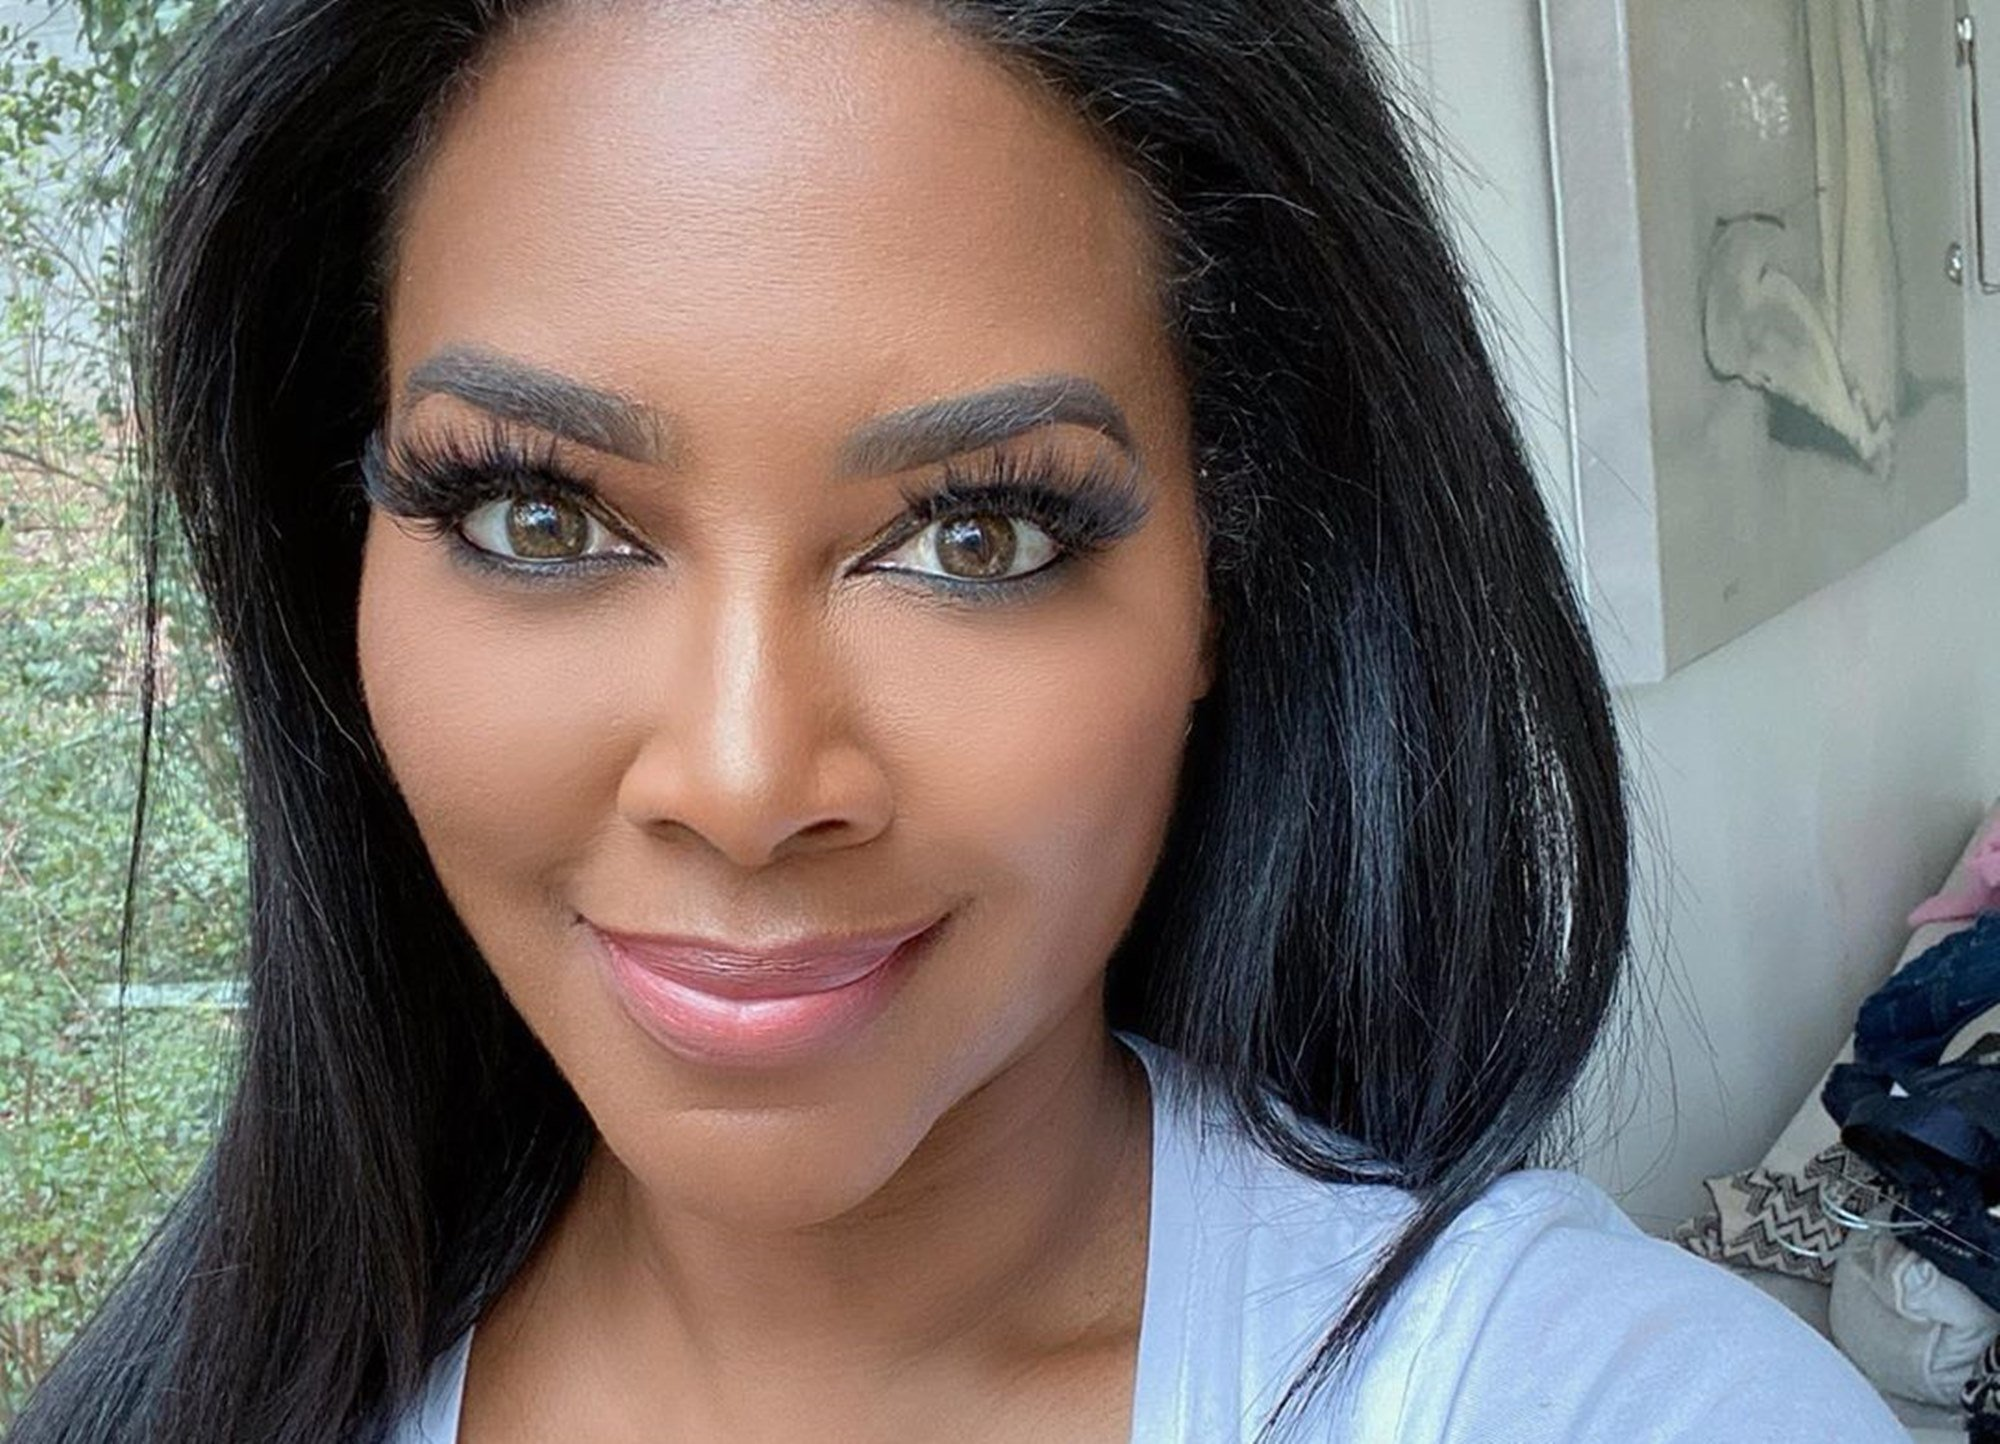 Kenya Moore Addresses The Subject Of Natural Hair – Check Out The Post She Shared